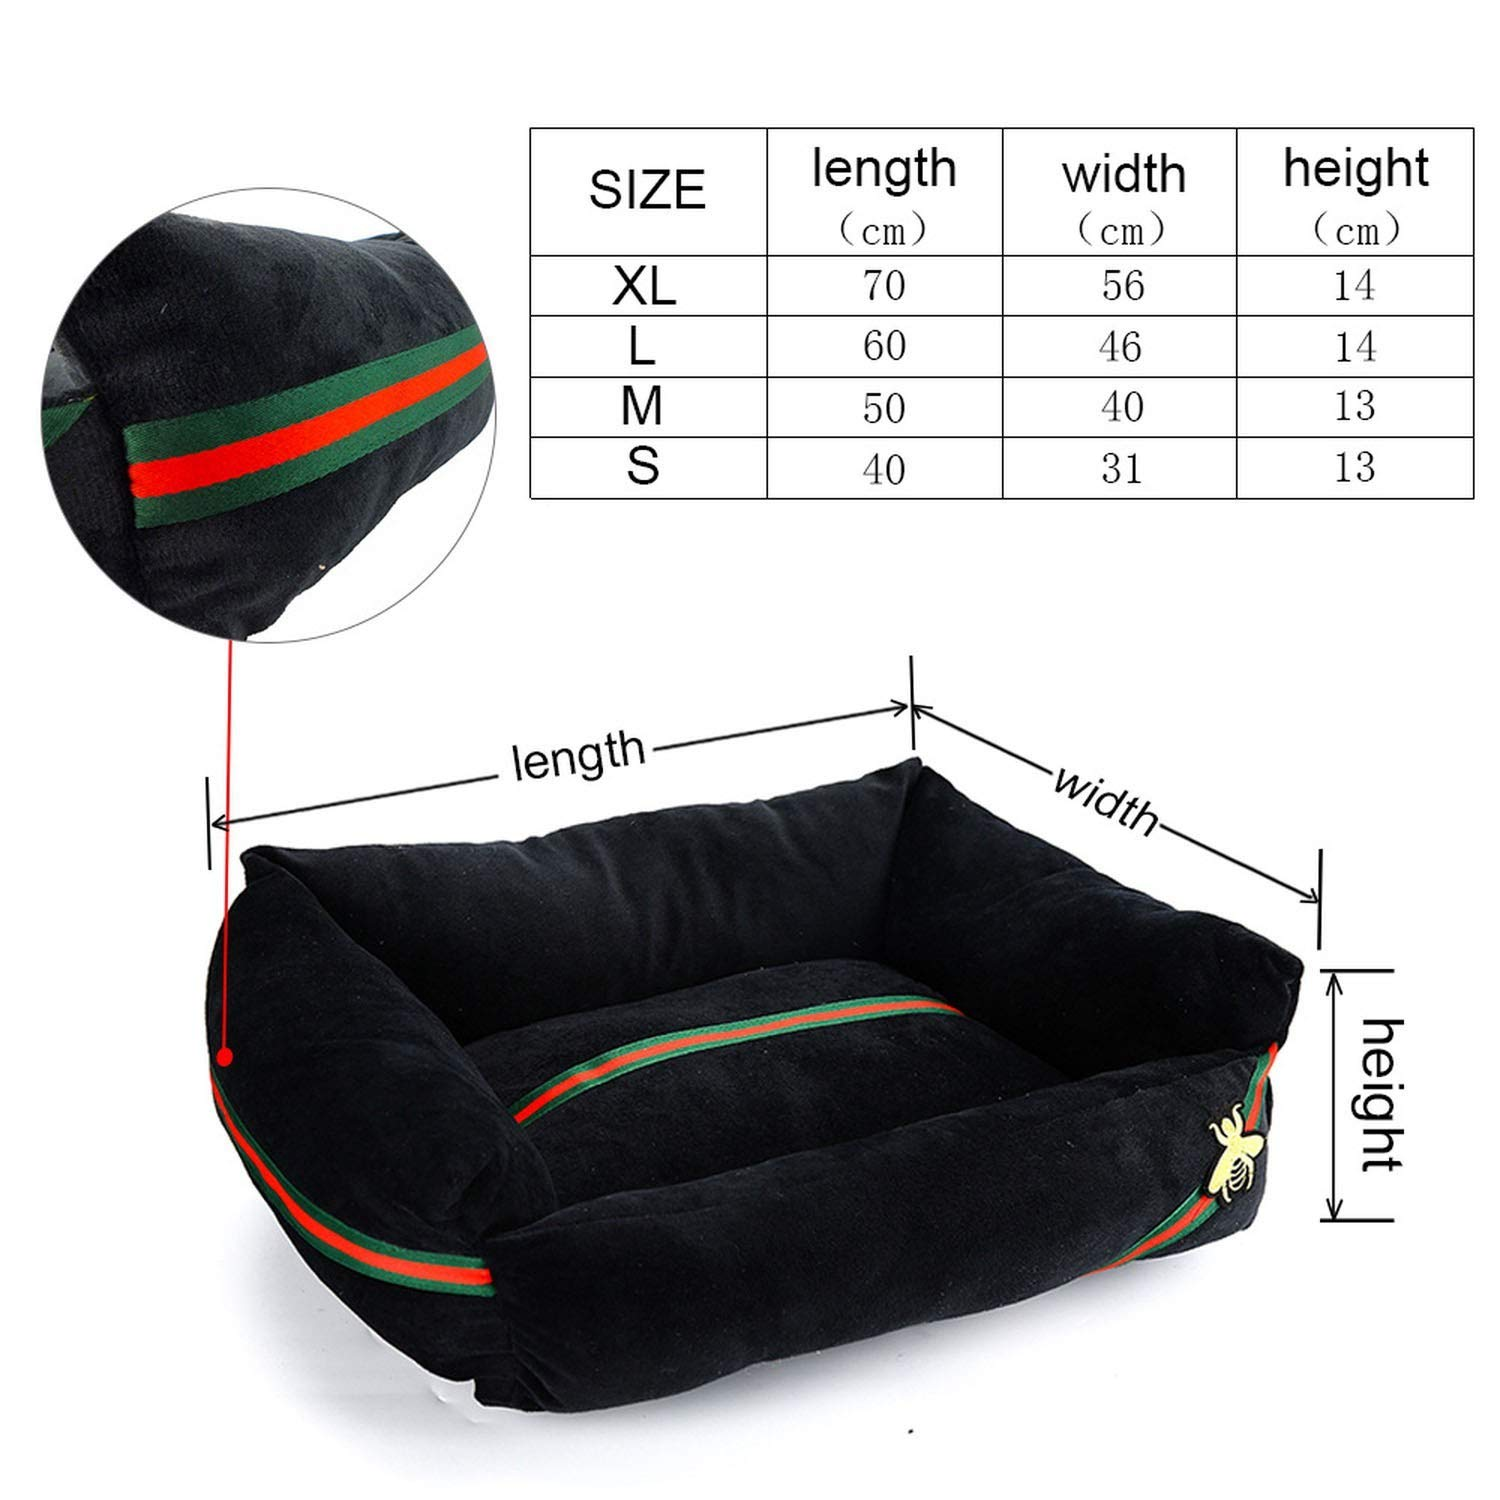 Black M As Picture Black M As Picture Beds for Dogs Bed Cats Cotton Breathable Dog Sofas House for Cats Dog Bed Hand Wash Bench for Small Large Dogs Bed Pets XR0002,Black,M